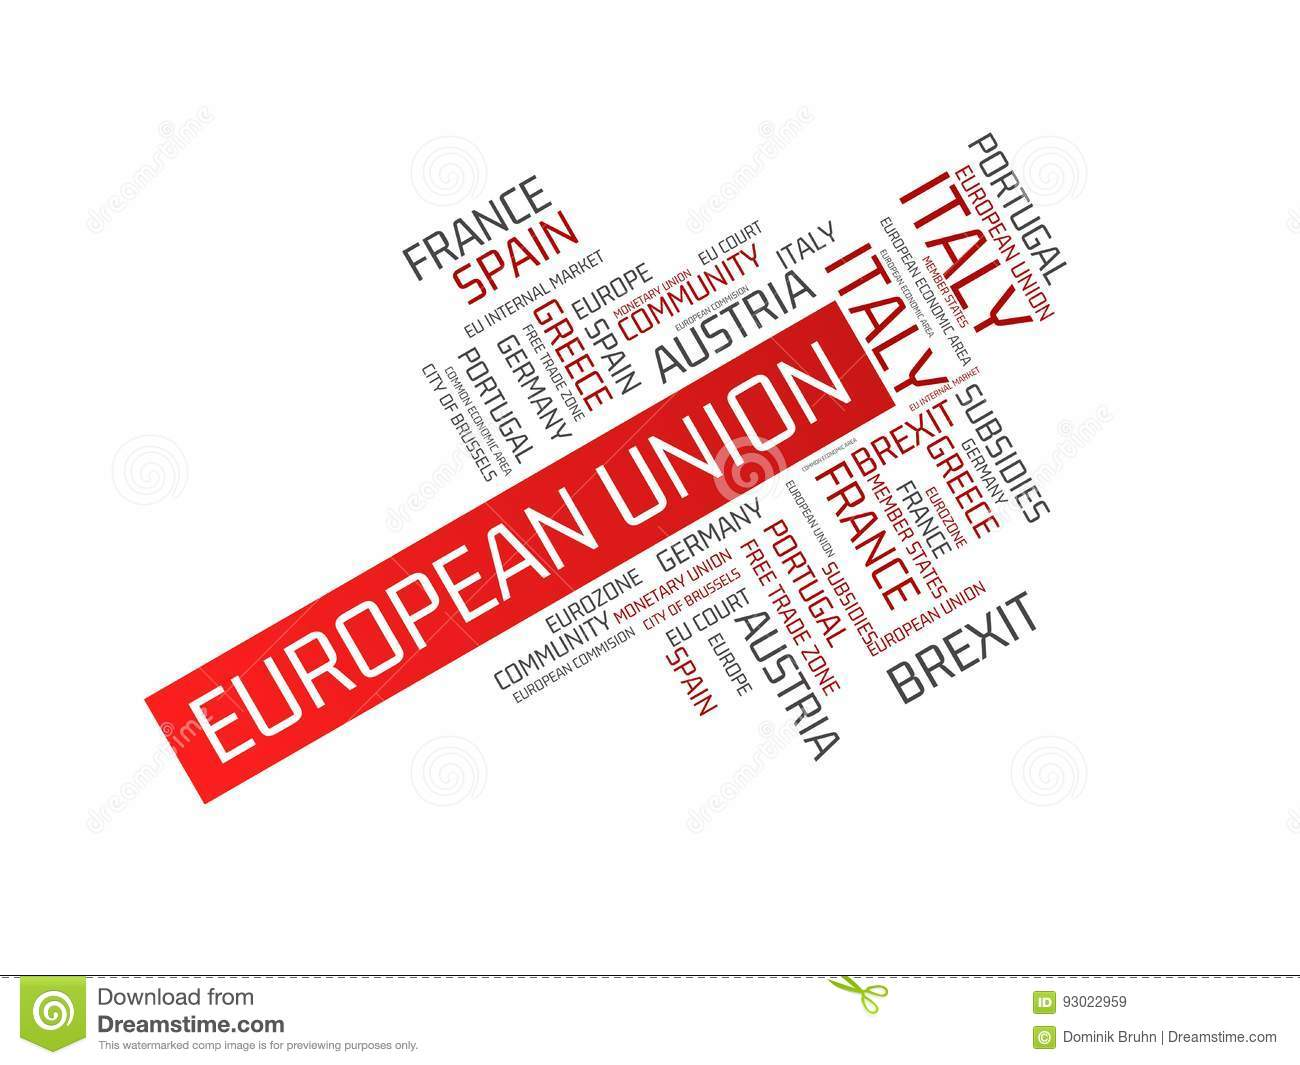 european union essay topics European union essay - find out common recommendations how to receive a plagiarism free themed research paper from a professional provider choose the service, and our qualified writers will do your task supremely well find out everything you have always wanted to know about custom writing.